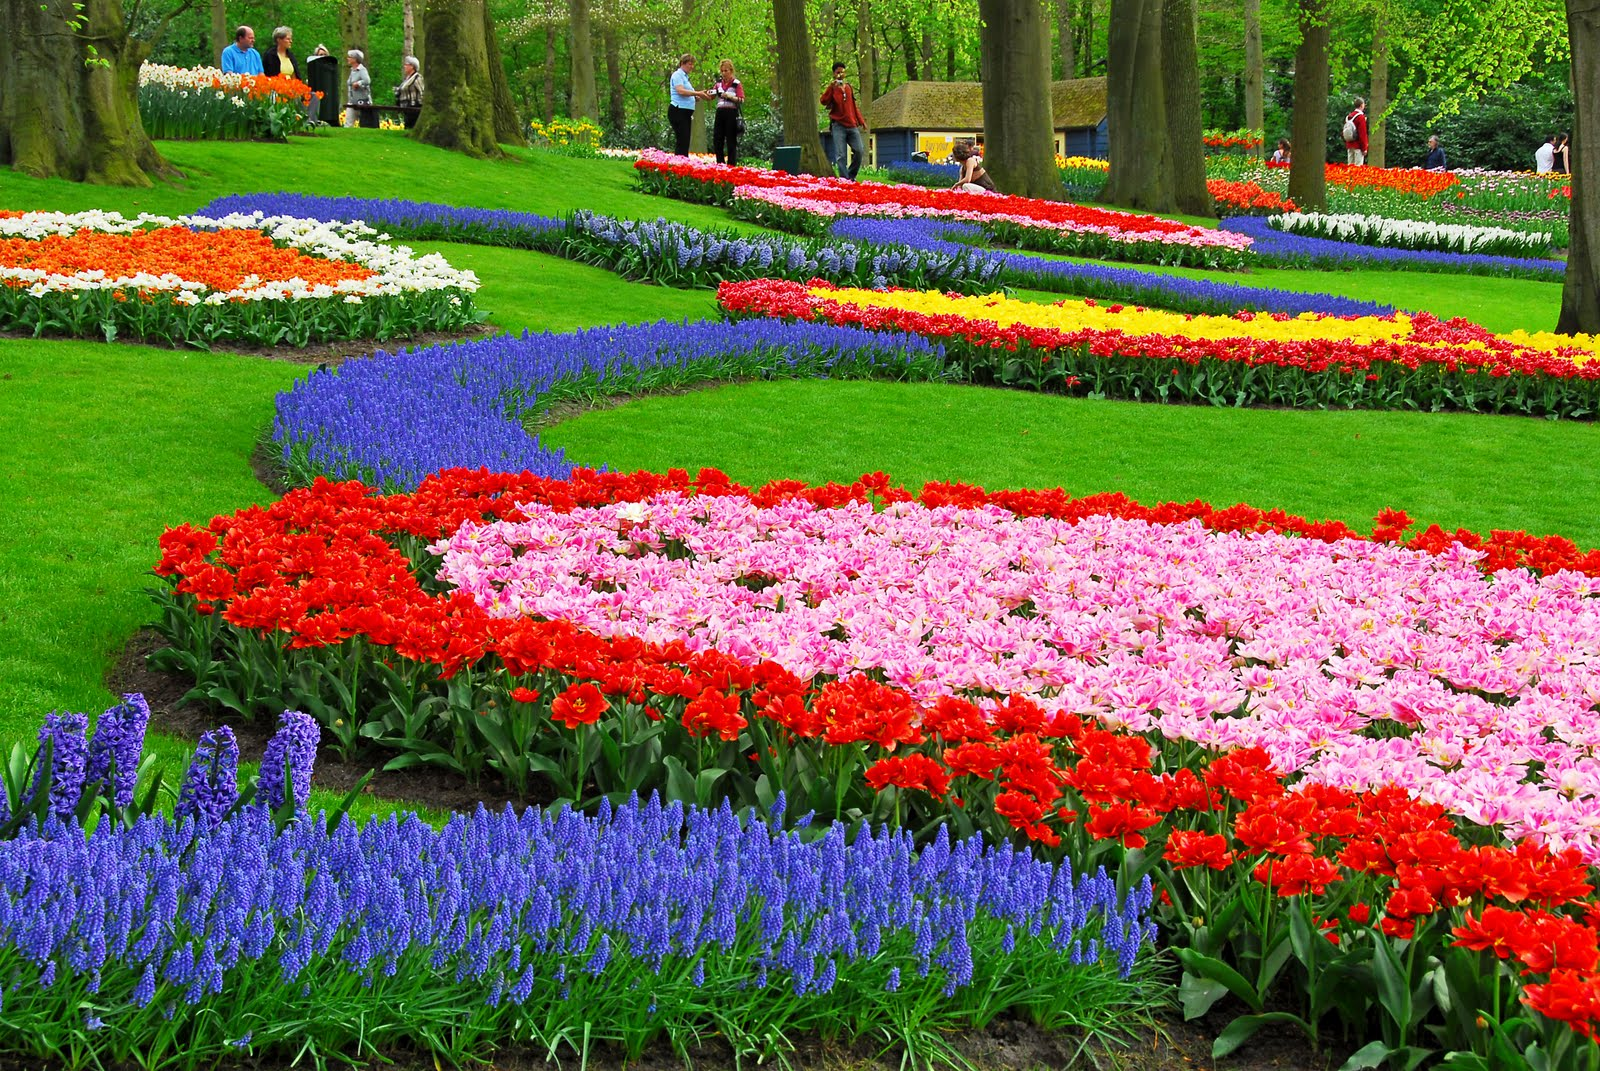 world's largest flower garden